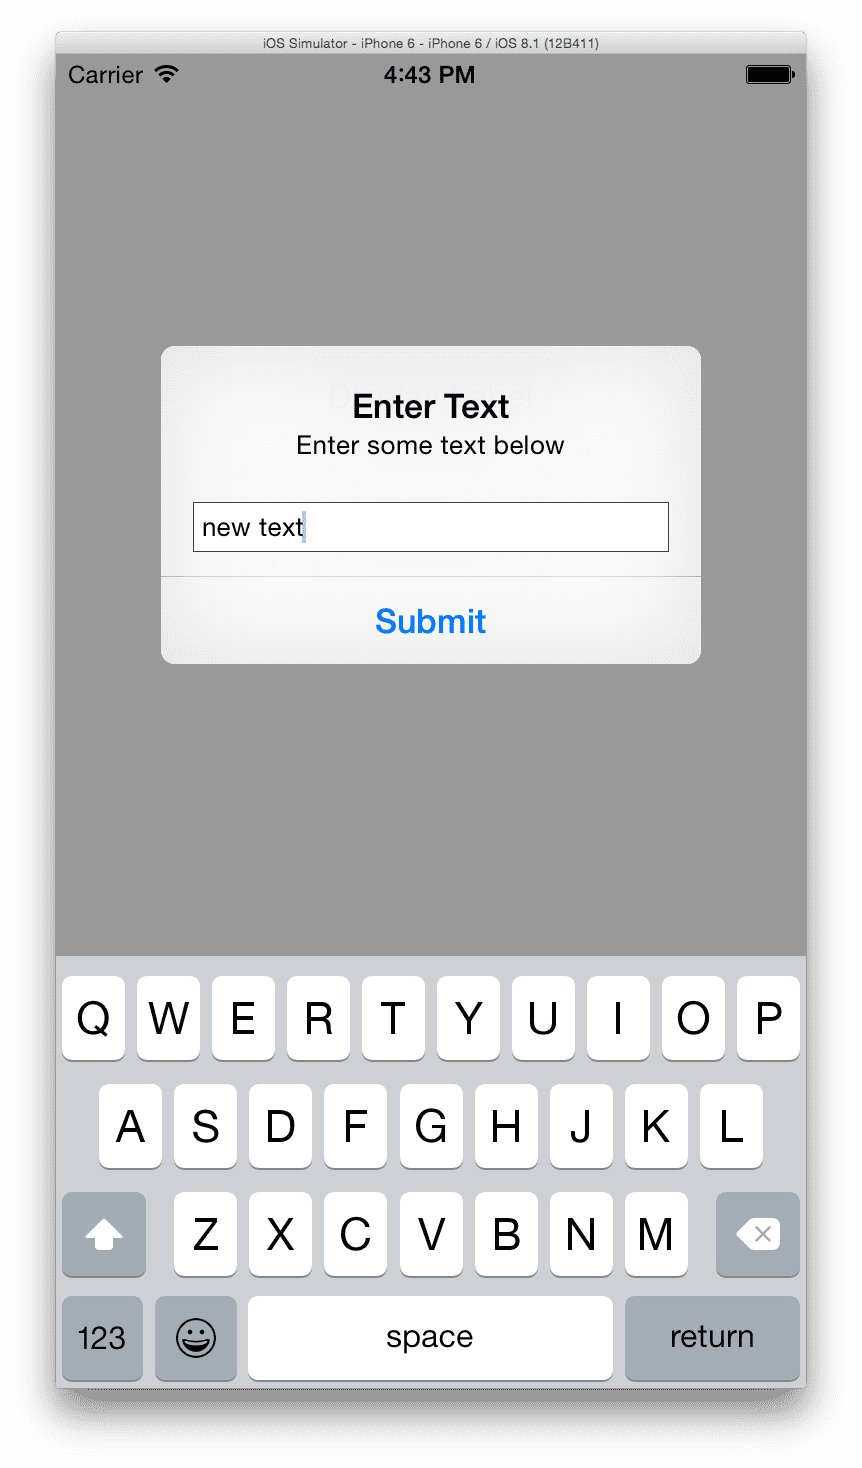 04 - iOS Simulator Alert Entry with text